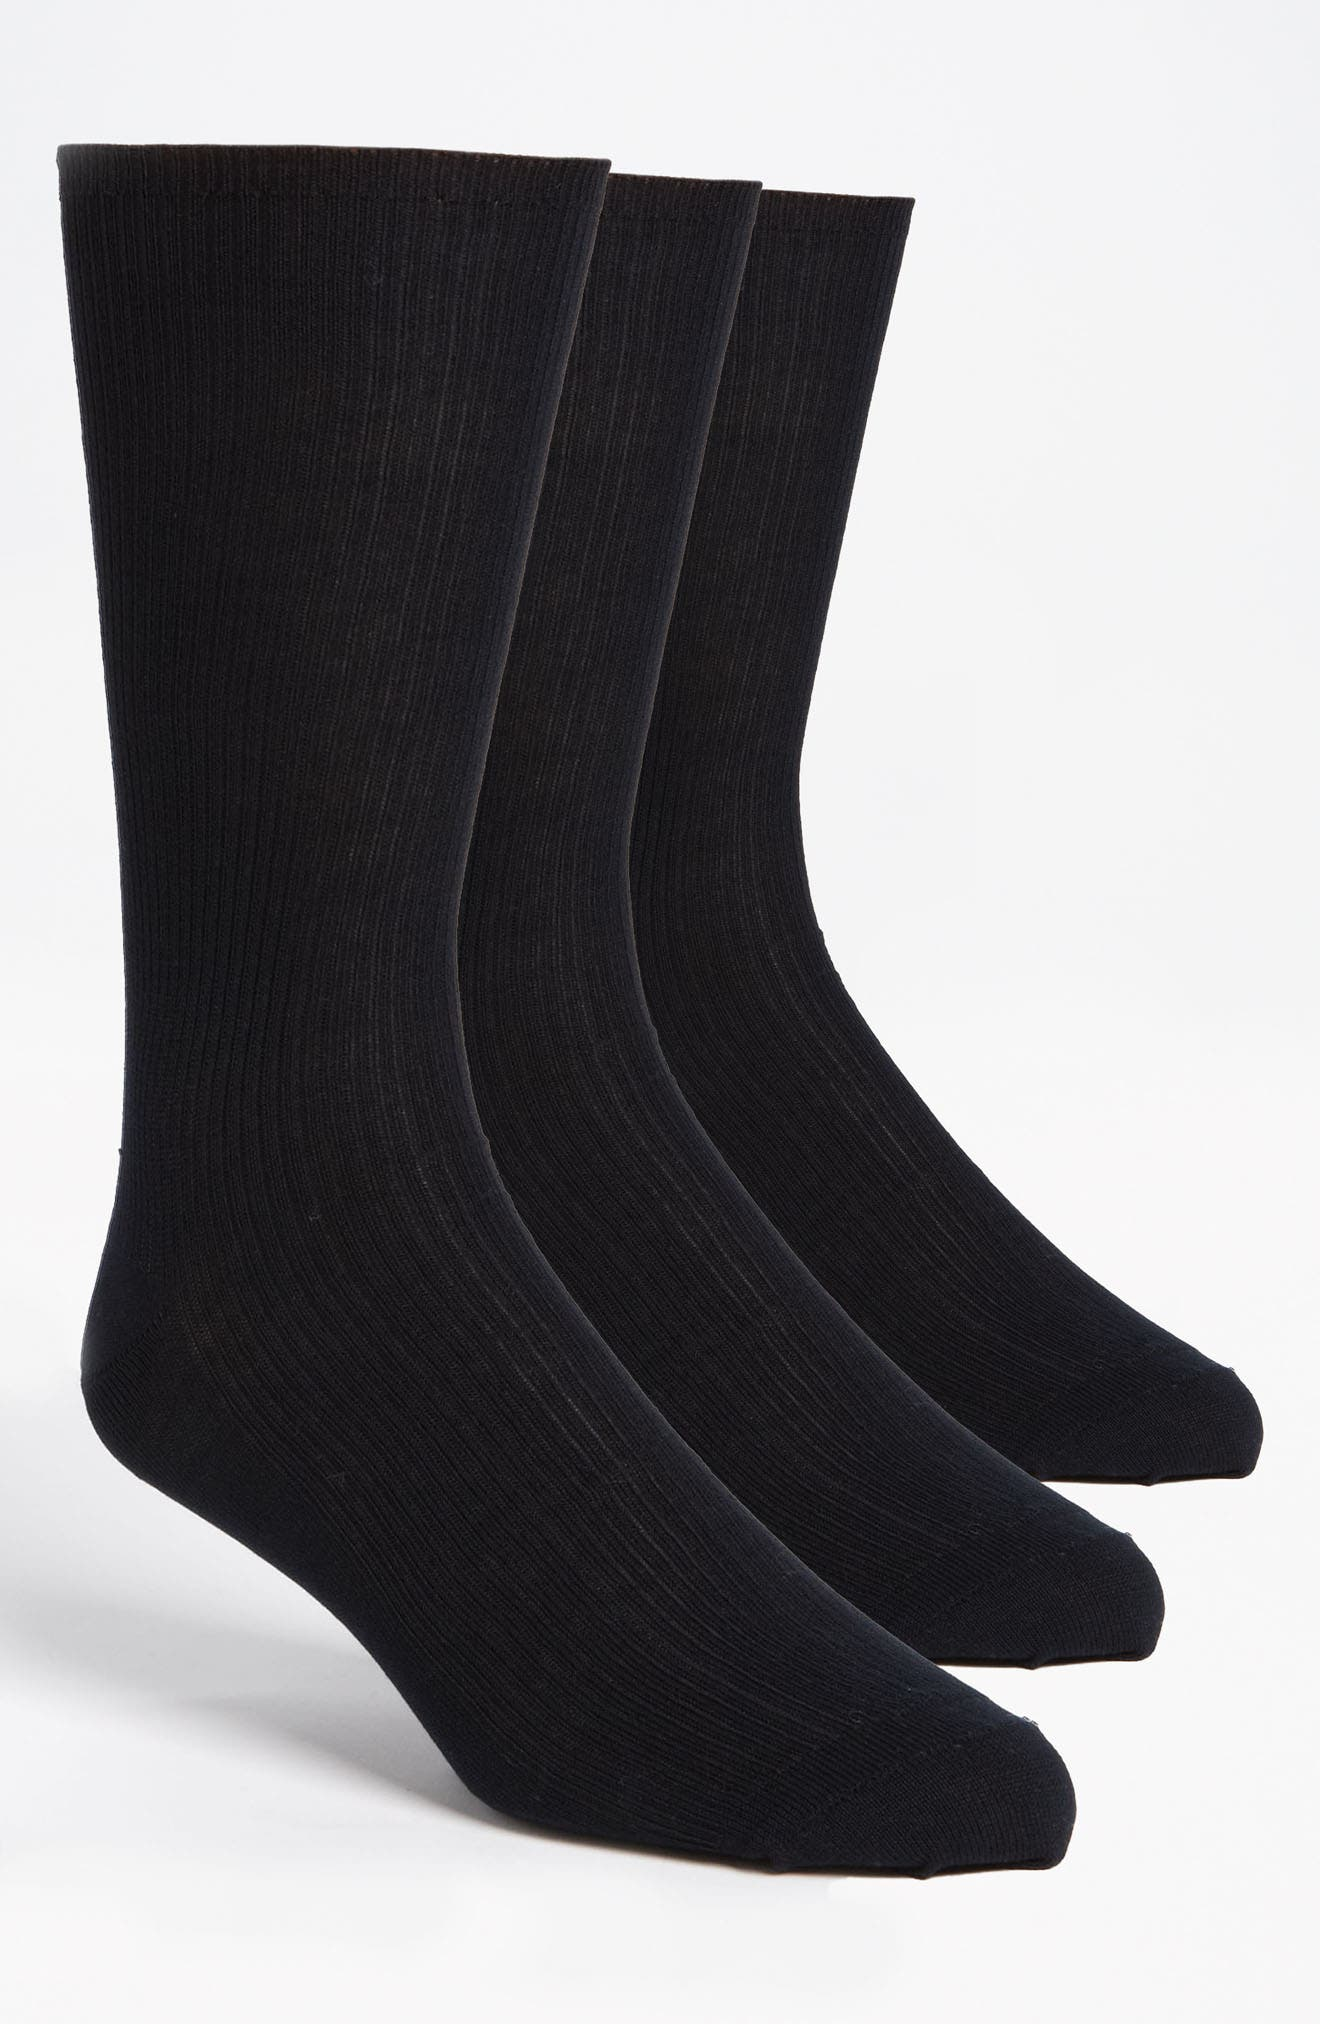 Calvin Klein Cotton Blend Dress Socks (3-Pack)